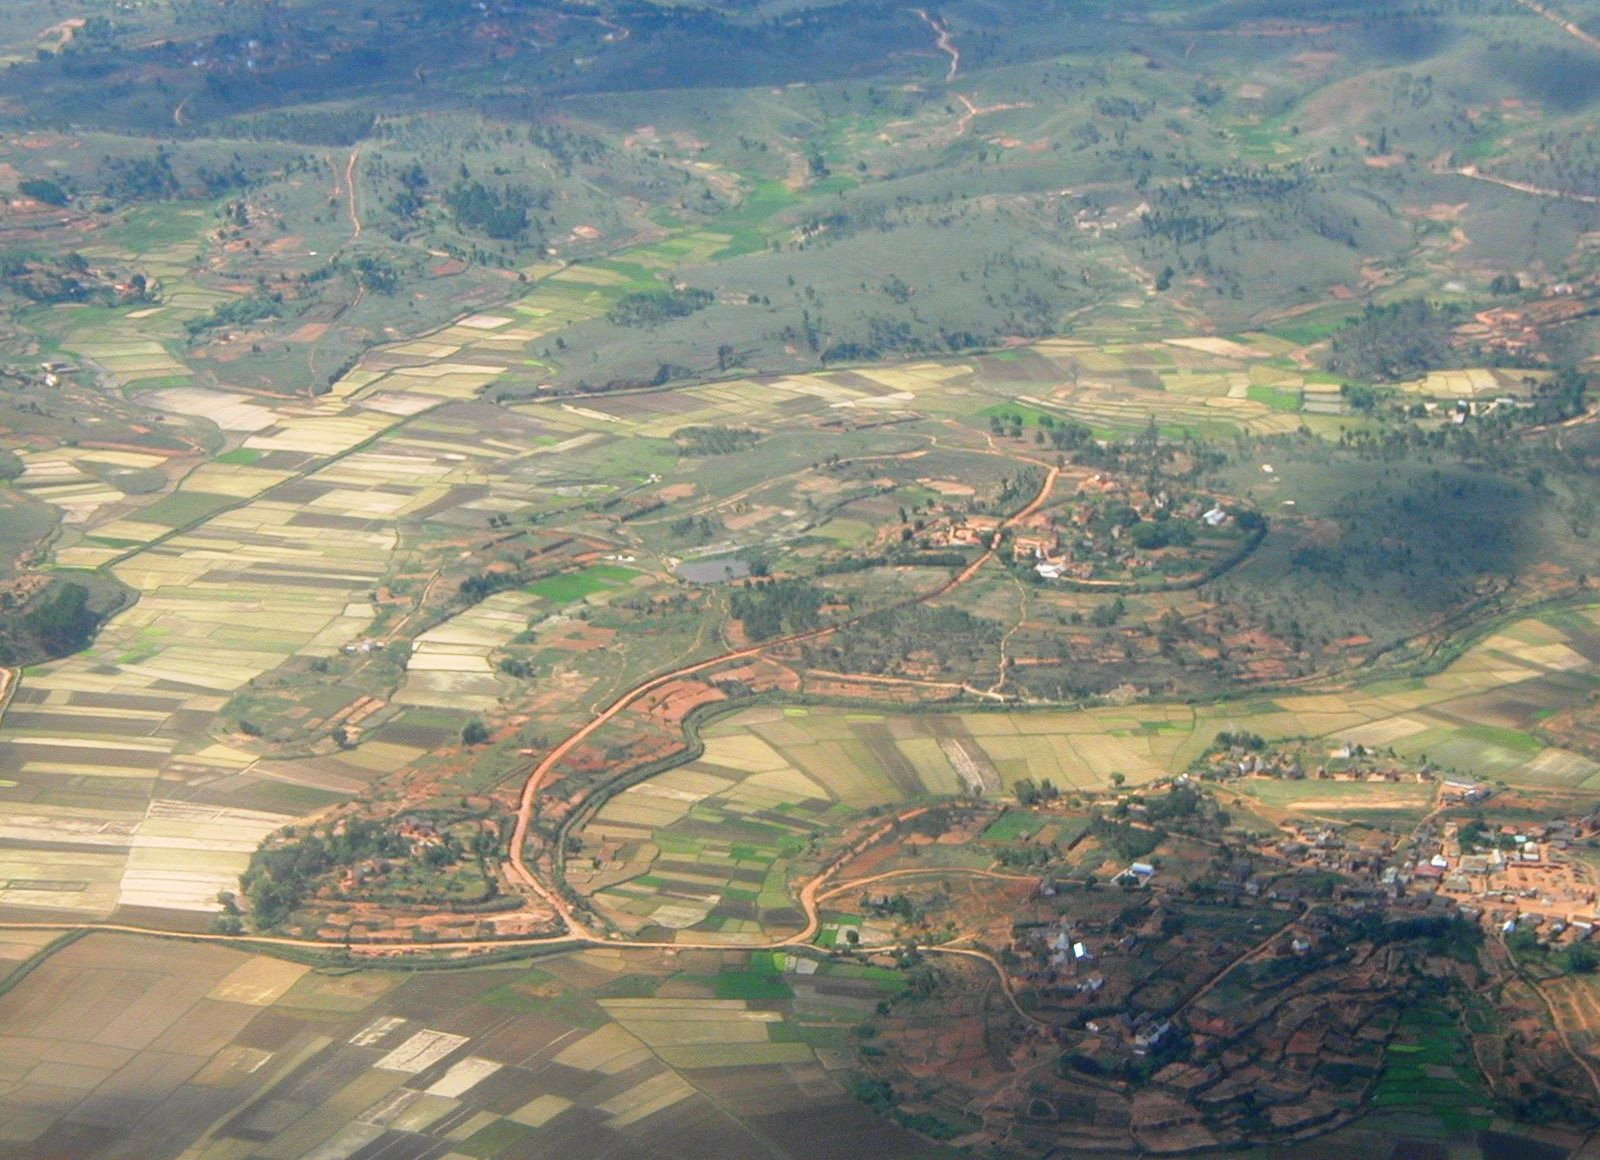 Regions with high employment in agriculture, such as here in Madagascar, rely on seasonal rainfall, land tenure, and access to markets. Spatially overlaying distributions of these different features can help researchers and decision-makers understand potential threats to agricultural communities over broad scales.